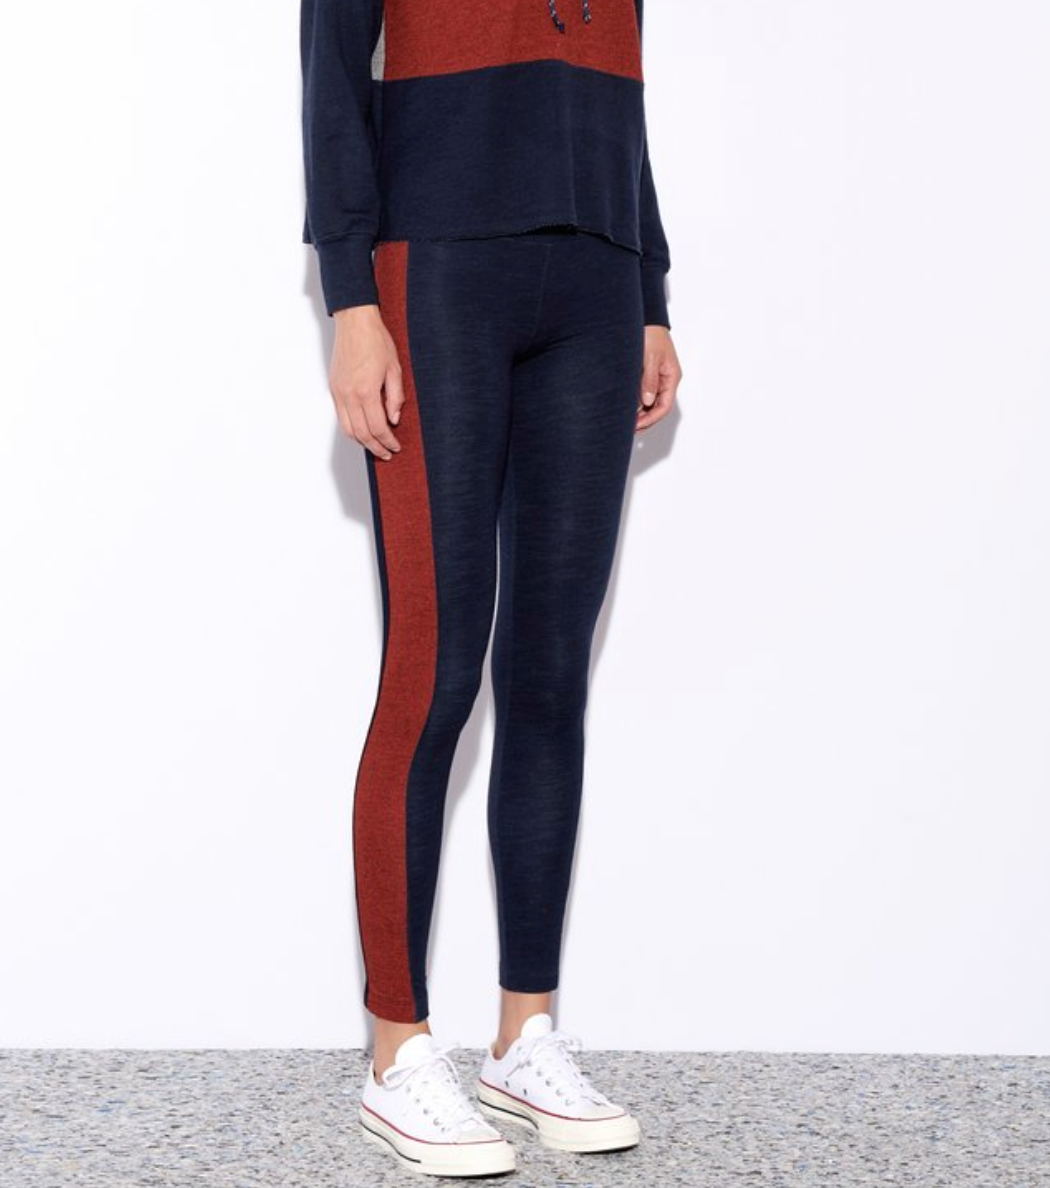 Sundry Marin Color Block Leggings